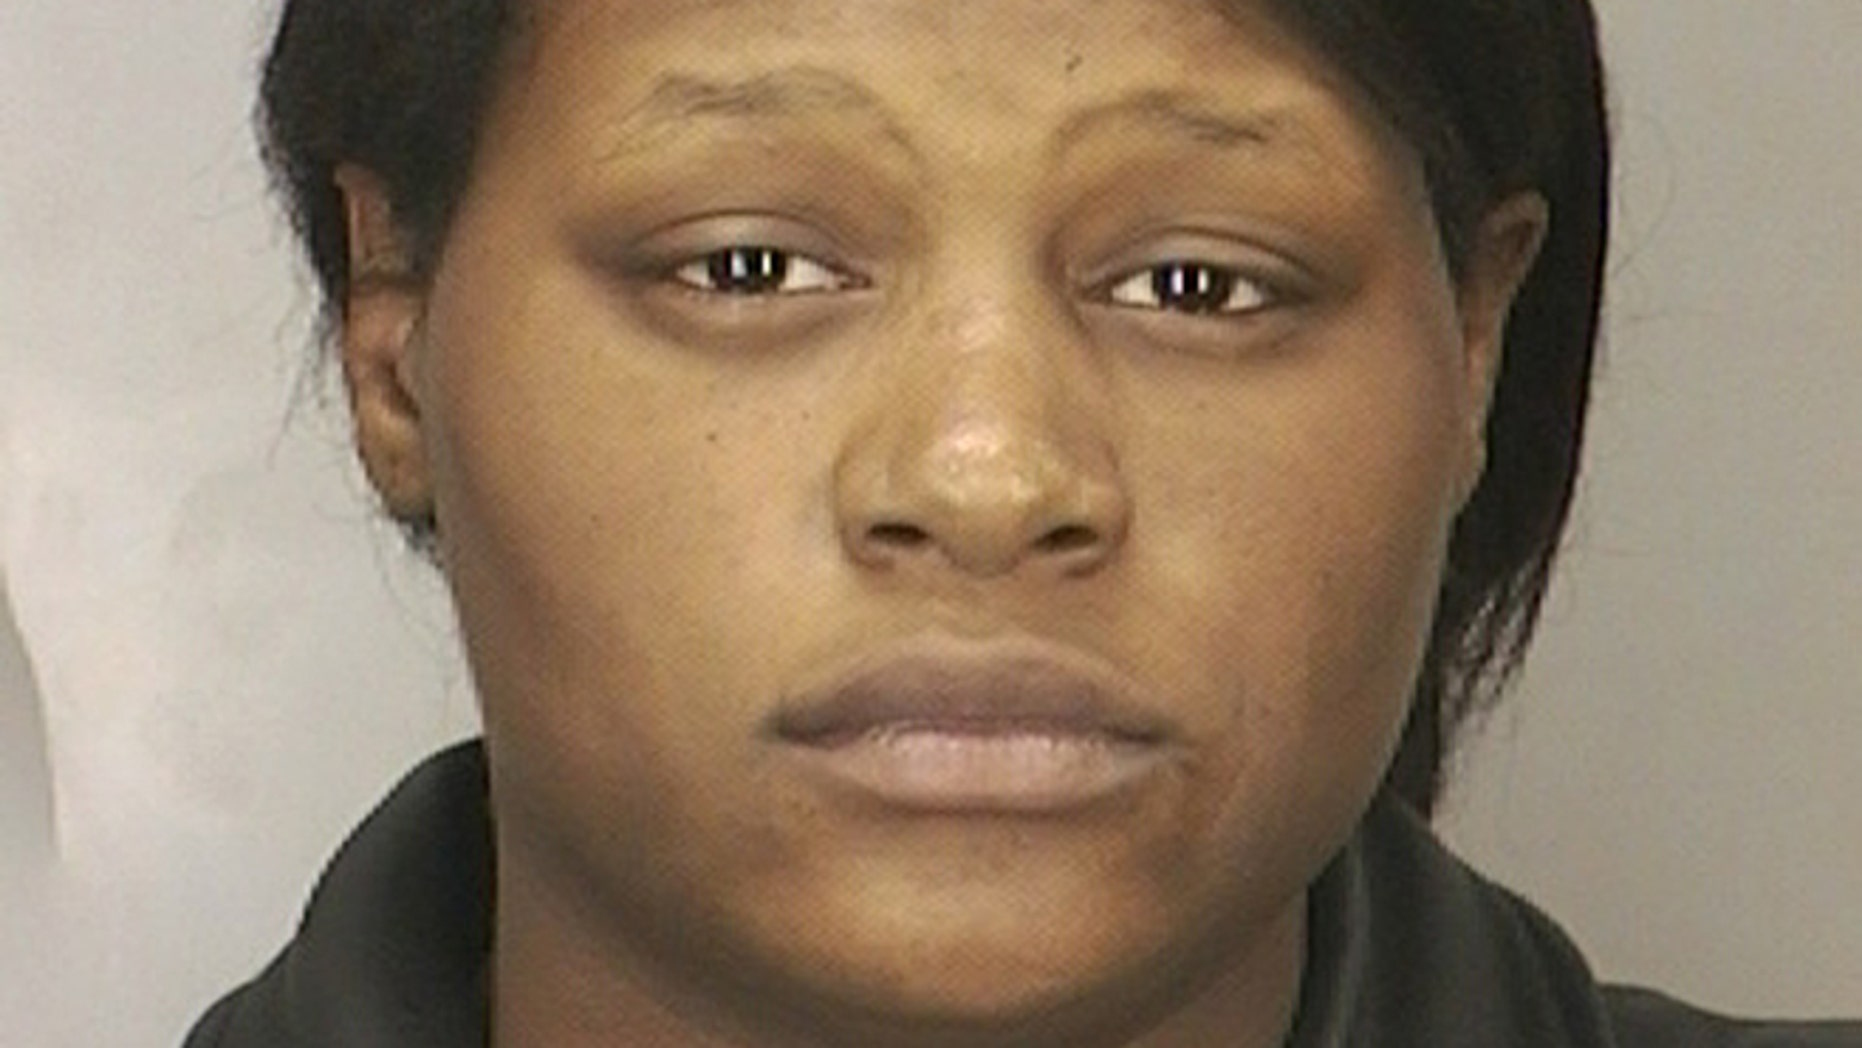 Leatrice Brewer is seen in this 2003 arrest photo provided by the Nassau County Police Department. A judge is holding a hearing Wednesday Nov. 6, 2013 to determine whether a Long Island mother found not guilty because of mental disease in the 2008 drowning of her three children deserves a piece of their $350,000 estate. (AP/Nassau County Police Department)